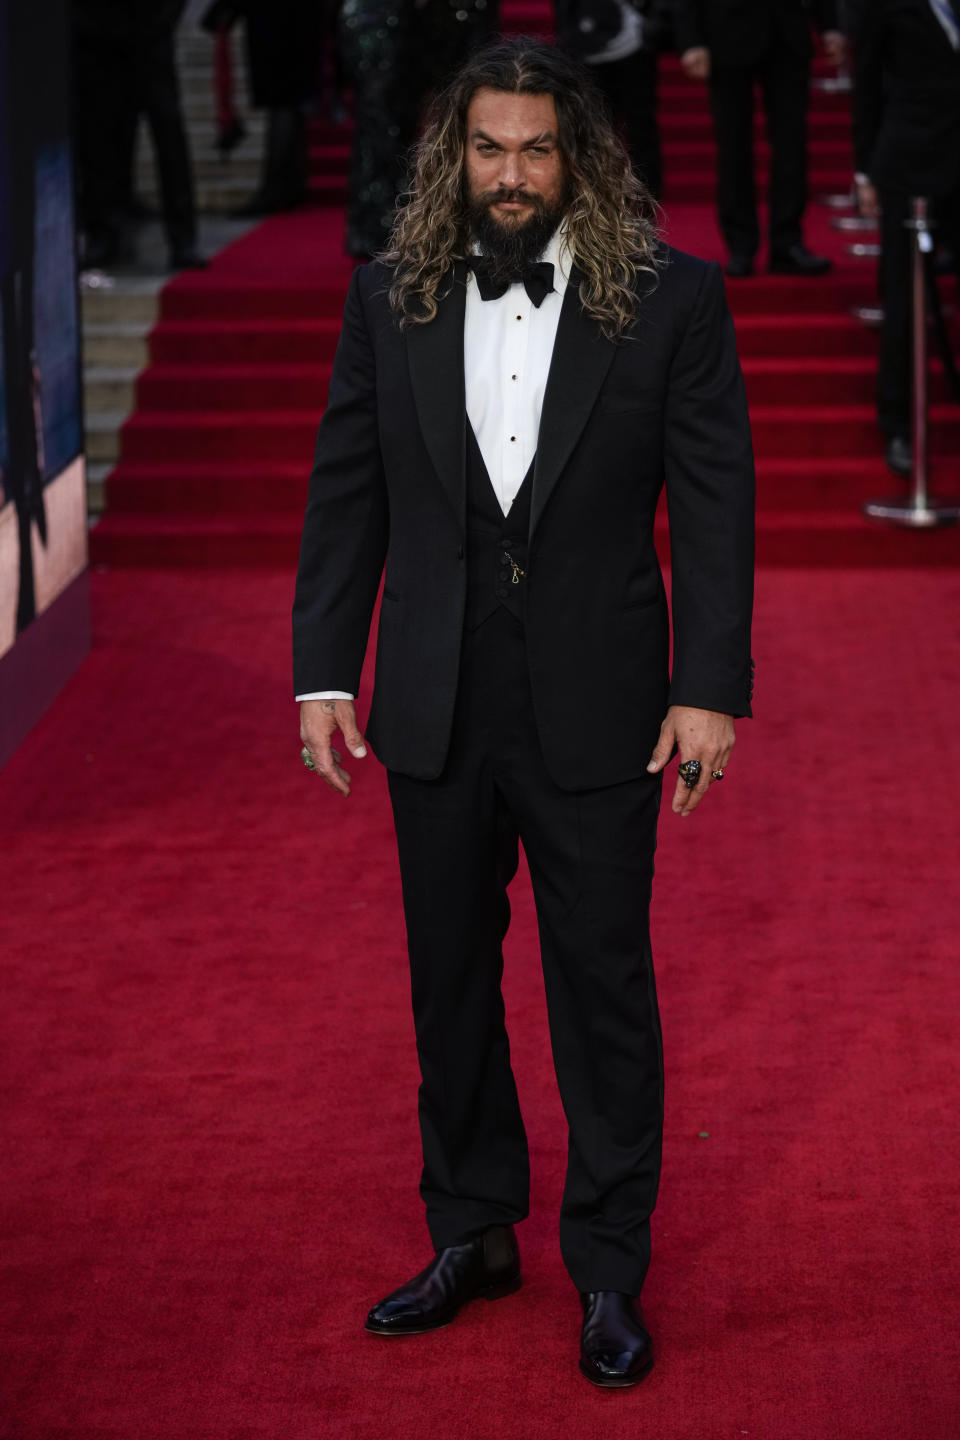 """Jason Momoa poses for photographers upon arrival for the world premiere of the new film from the James Bond franchise """"No Time To Die"""" in London, Tuesday, Sept. 28, 2021. (AP Photo/Matt Dunham)"""